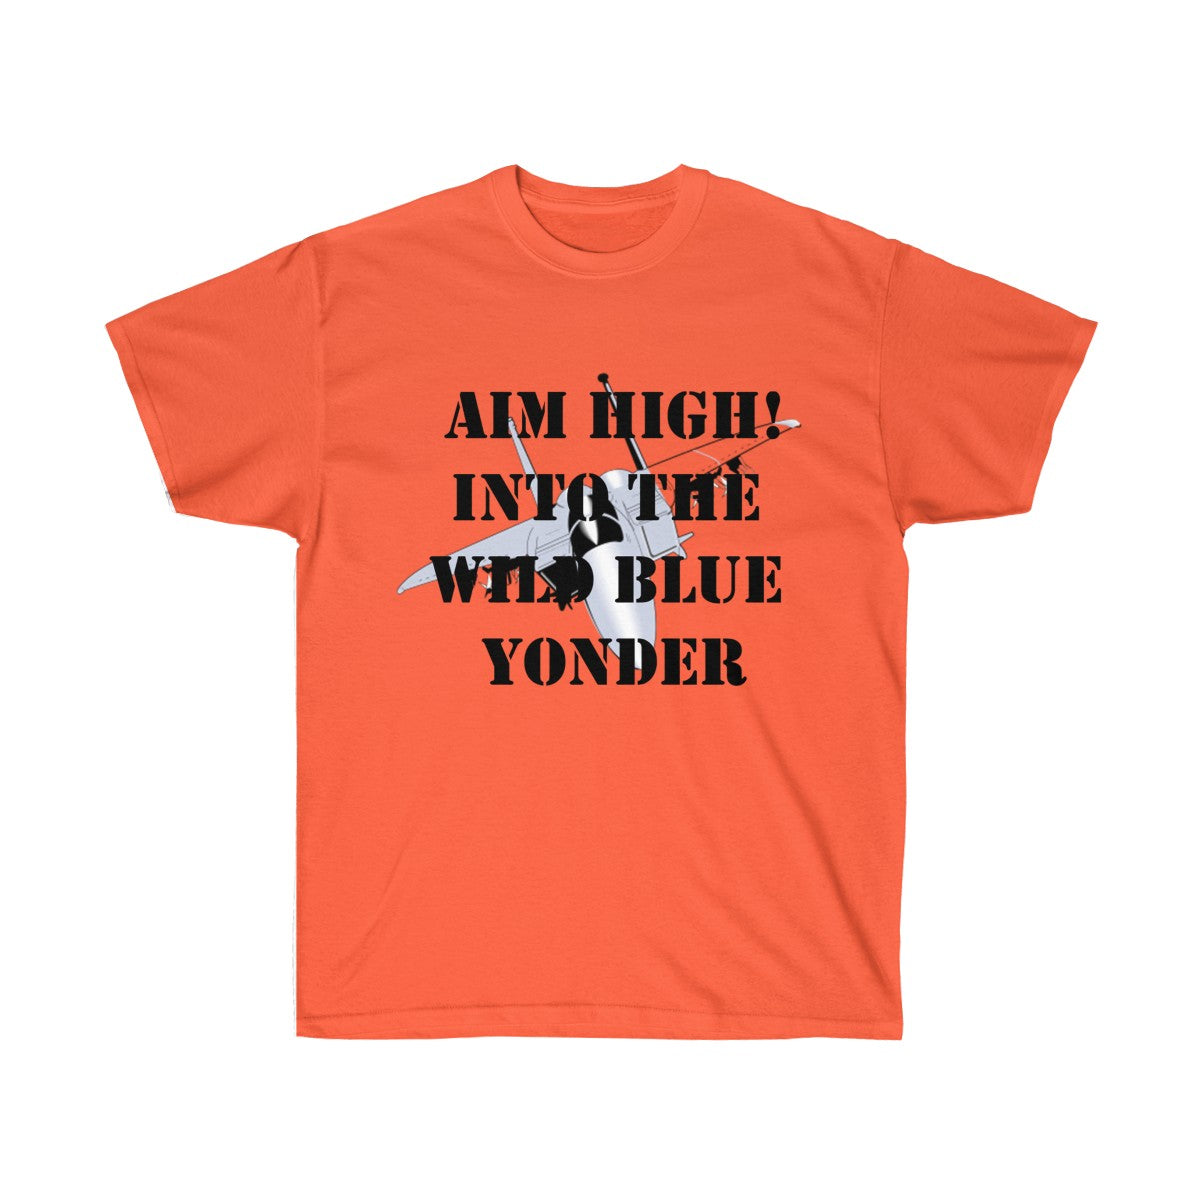 Aim High! Military Recognition Tee - Simple and Casual - UnequelyUs